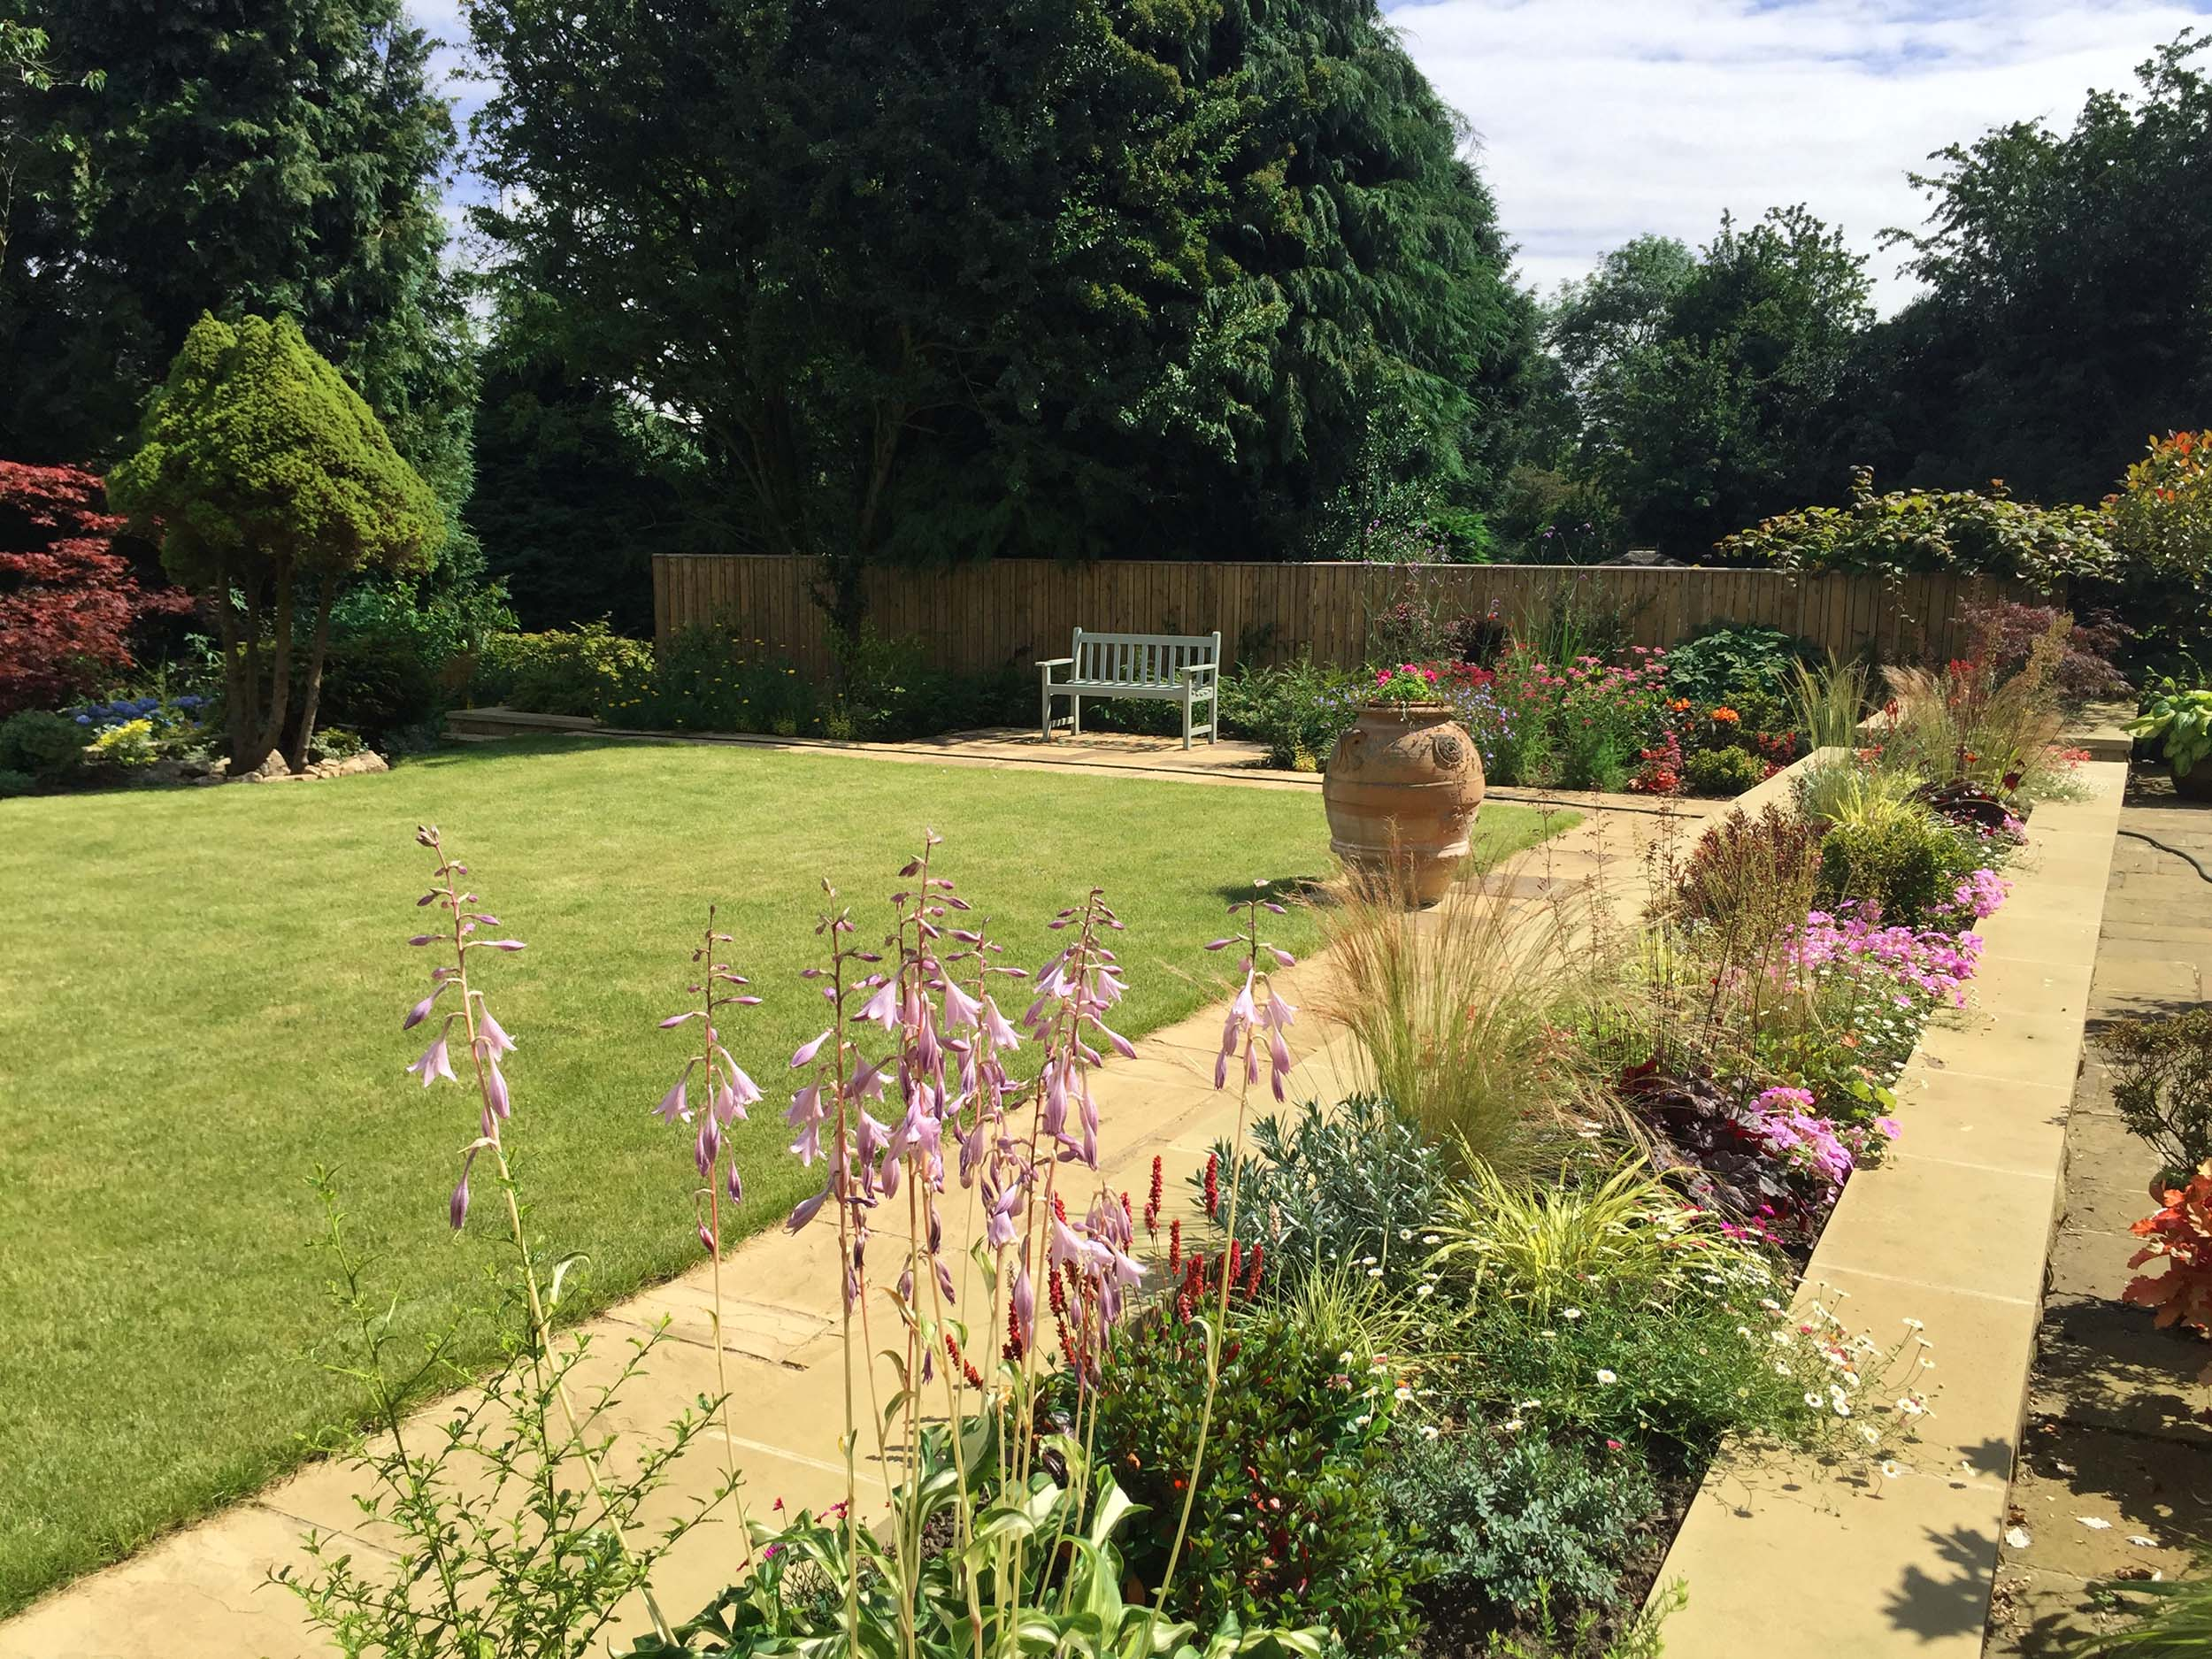 The new garden design layout includes a level lawn and all year round interest in the planting alyout